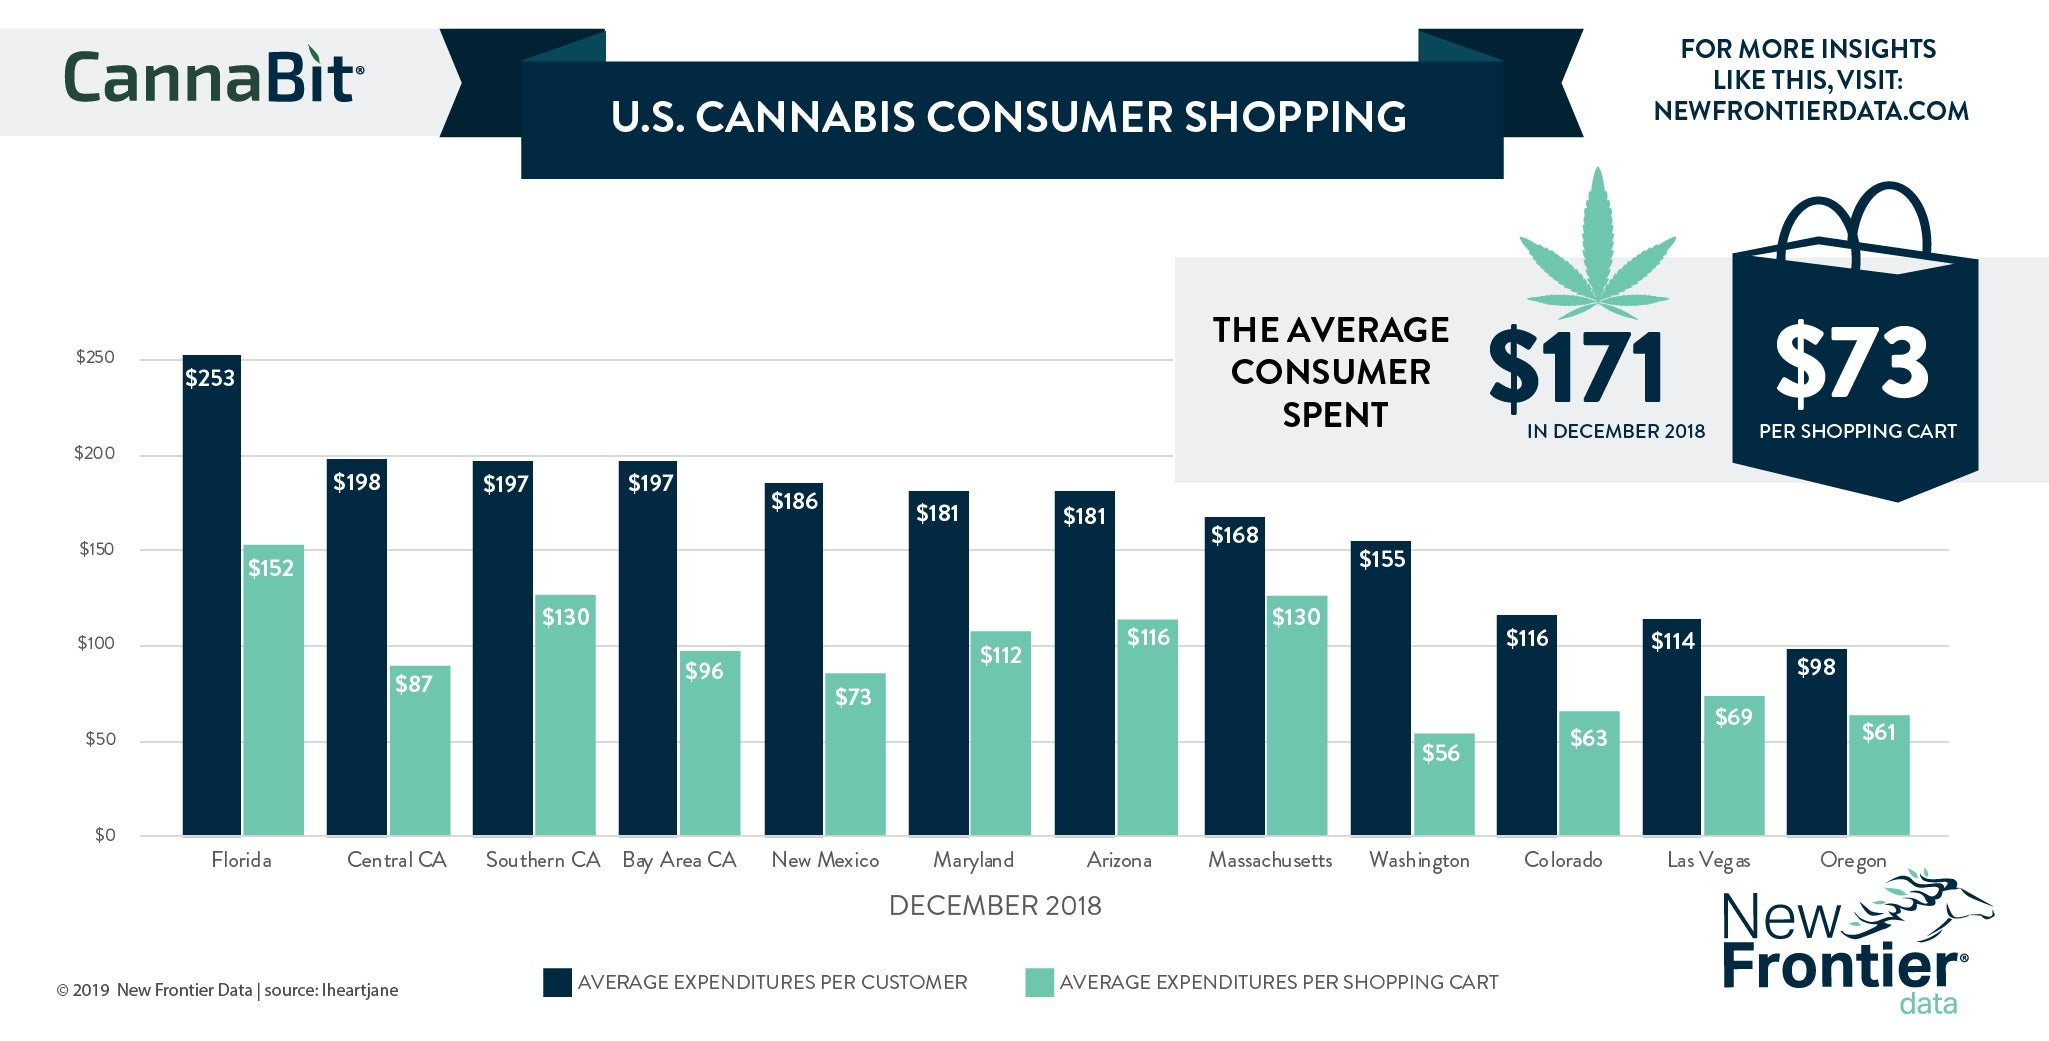 1-25-2019-cannabit-infographic.jpg